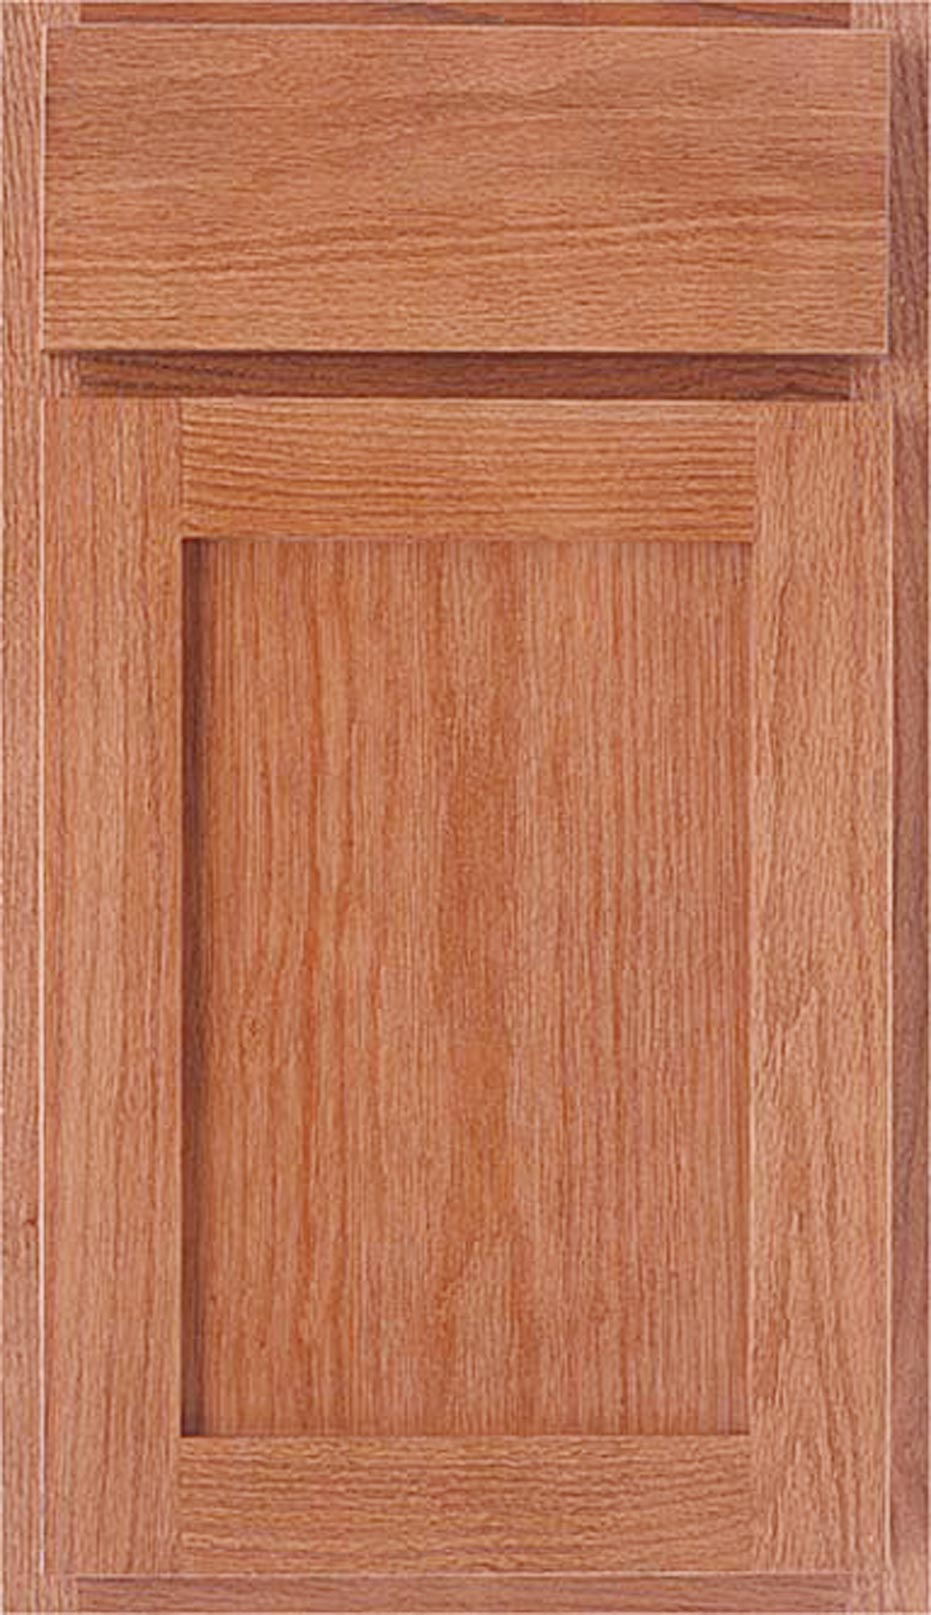 Shaker style kitchen cabinet doors 2 spotlats for Kitchen doors